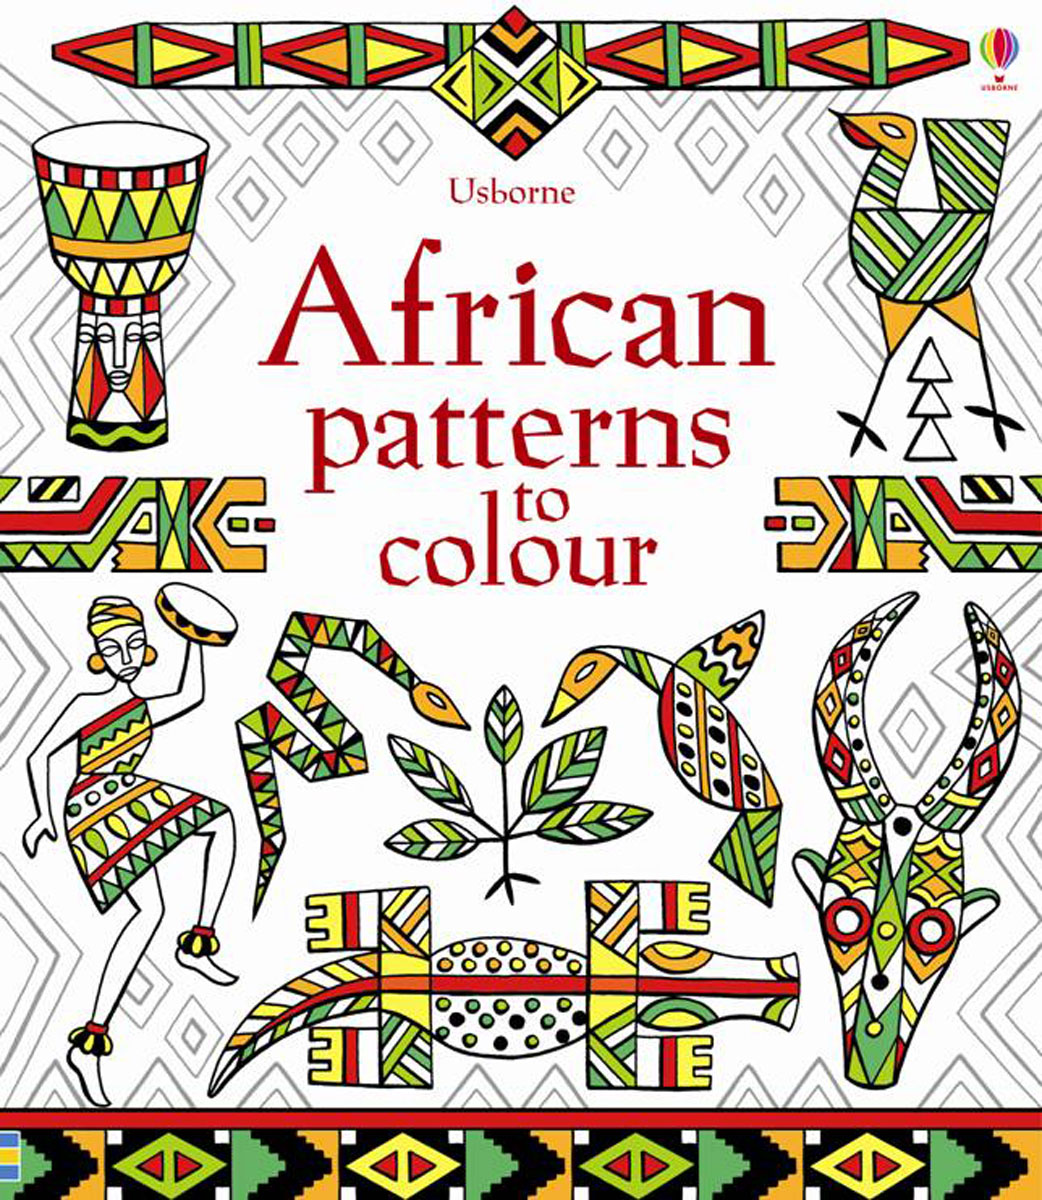 African Patterns to Colour patterns to colour